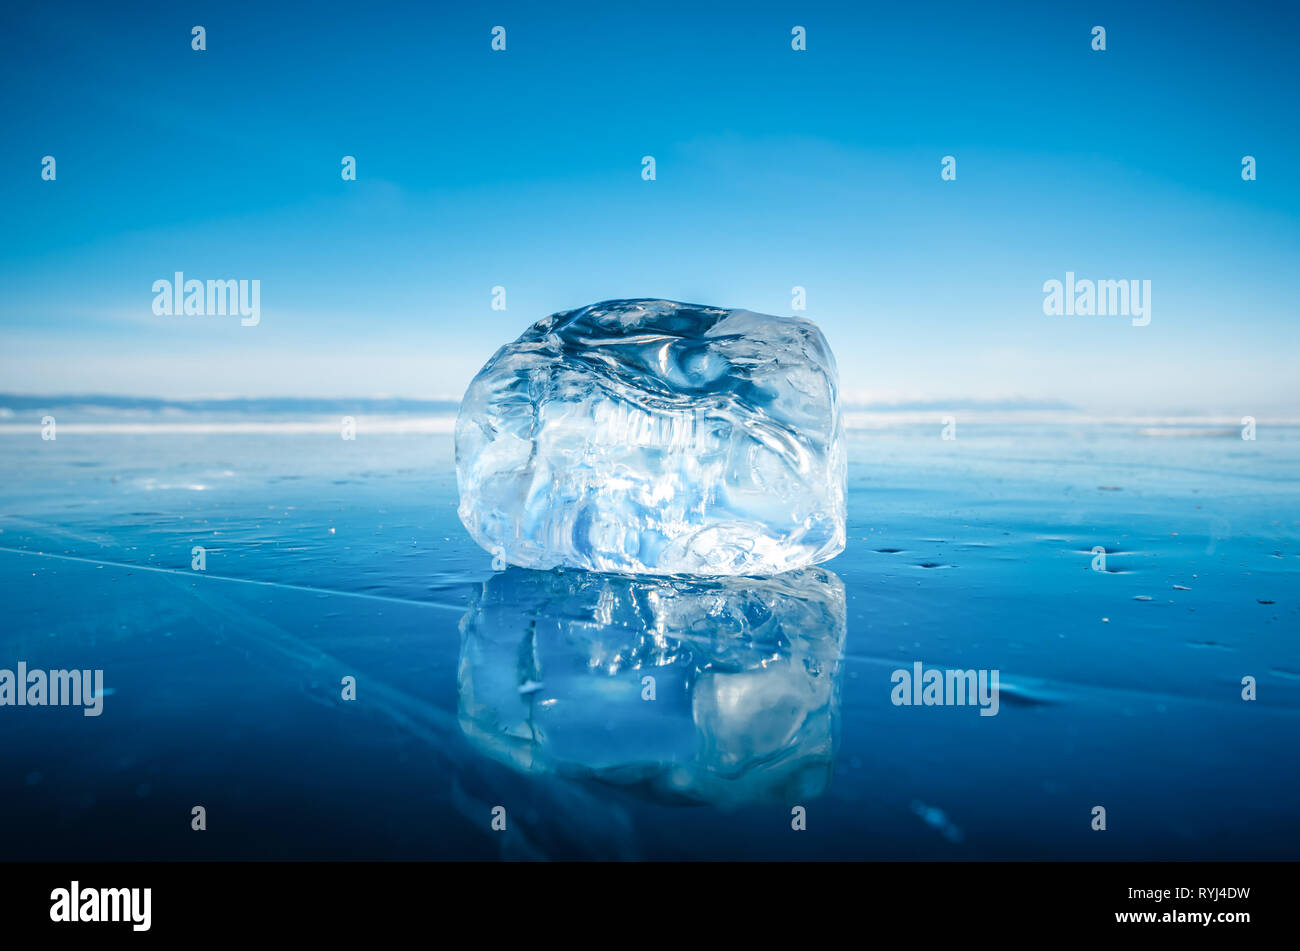 Close-up of natural breaking ice in frozen water on Lake Baikal, Siberia, Russia. Stock Photo